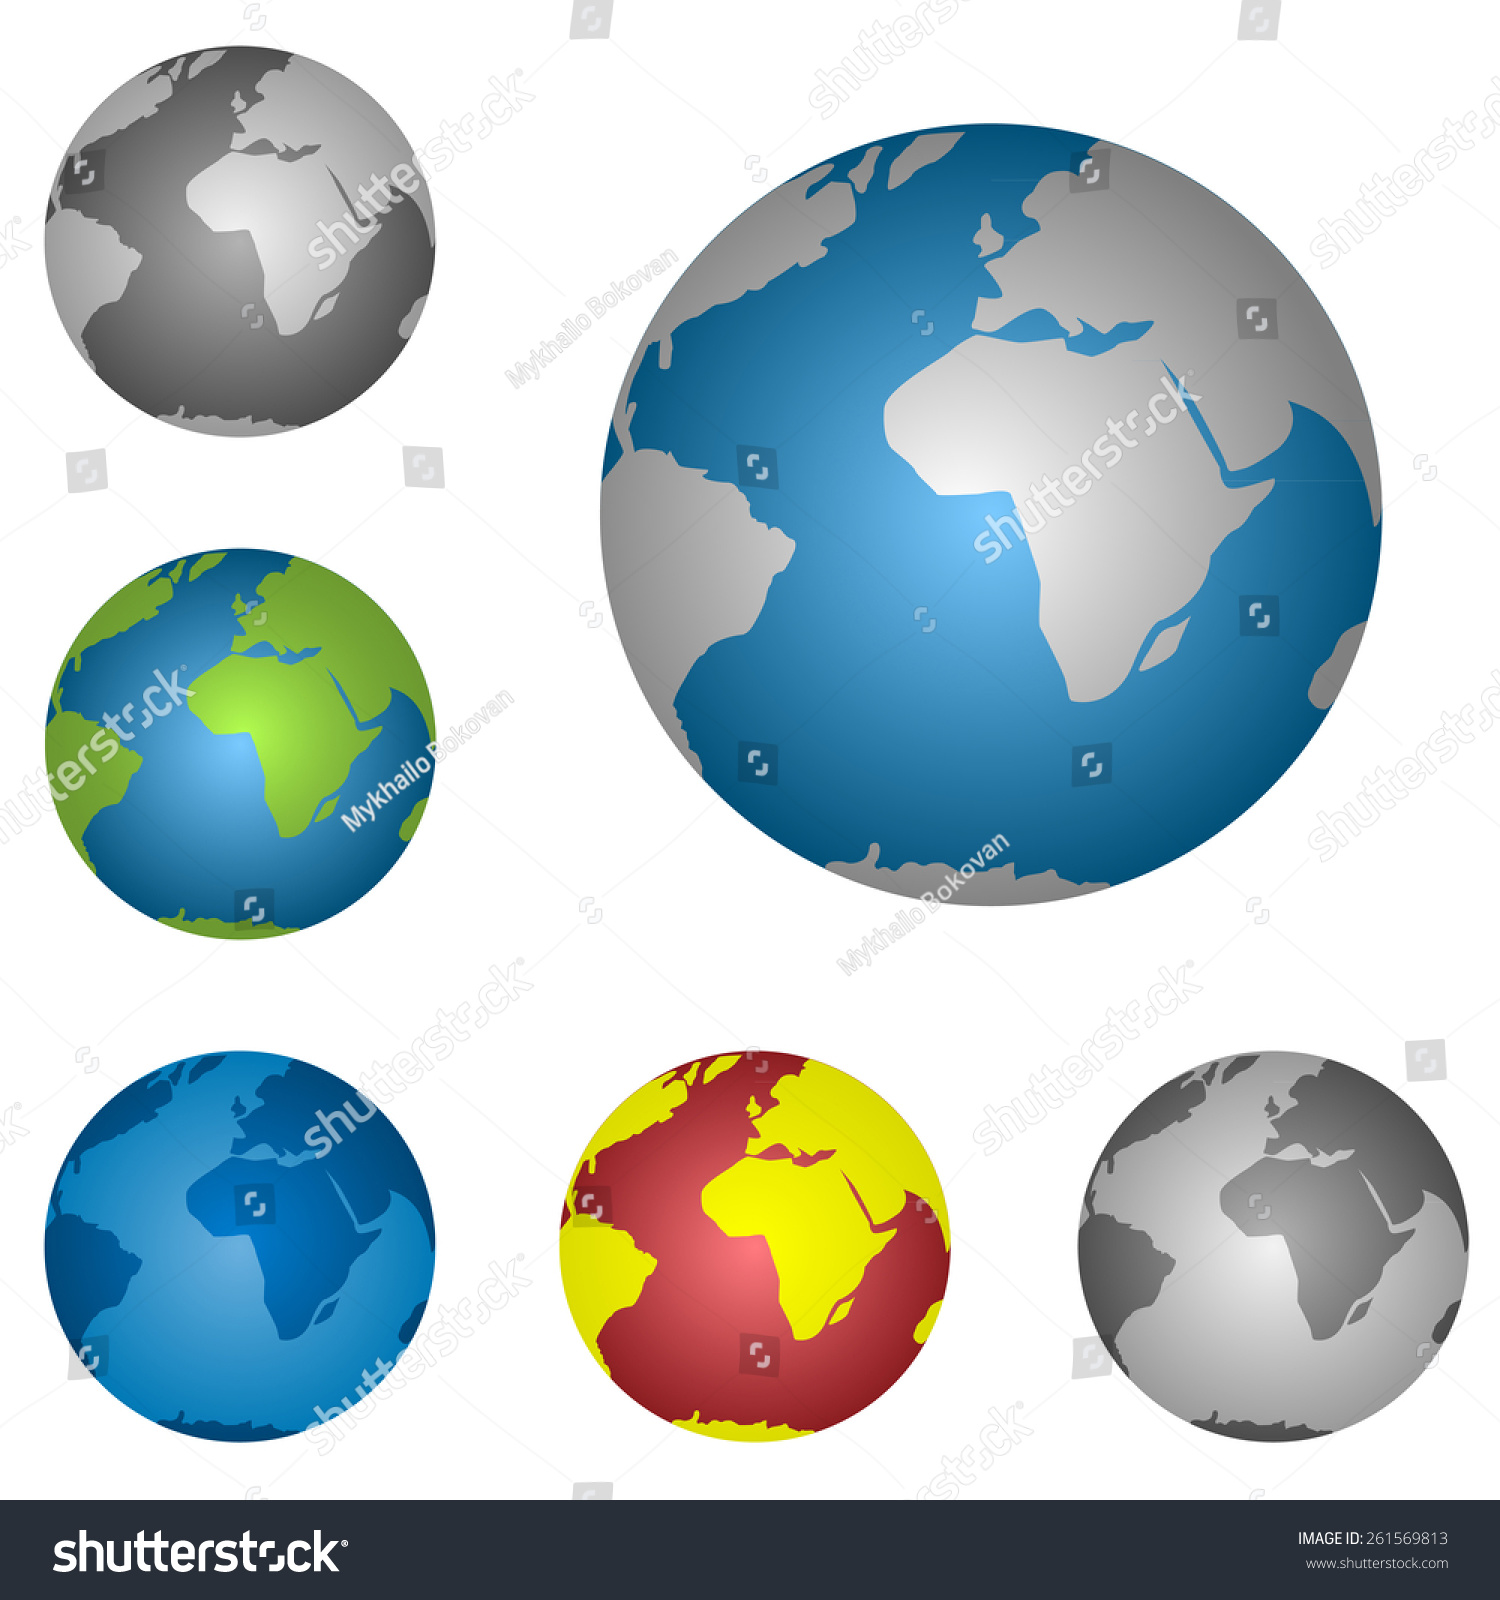 World map globe icon set vector stock vector 261569813 shutterstock world map globe icon set vector illustration gumiabroncs Gallery